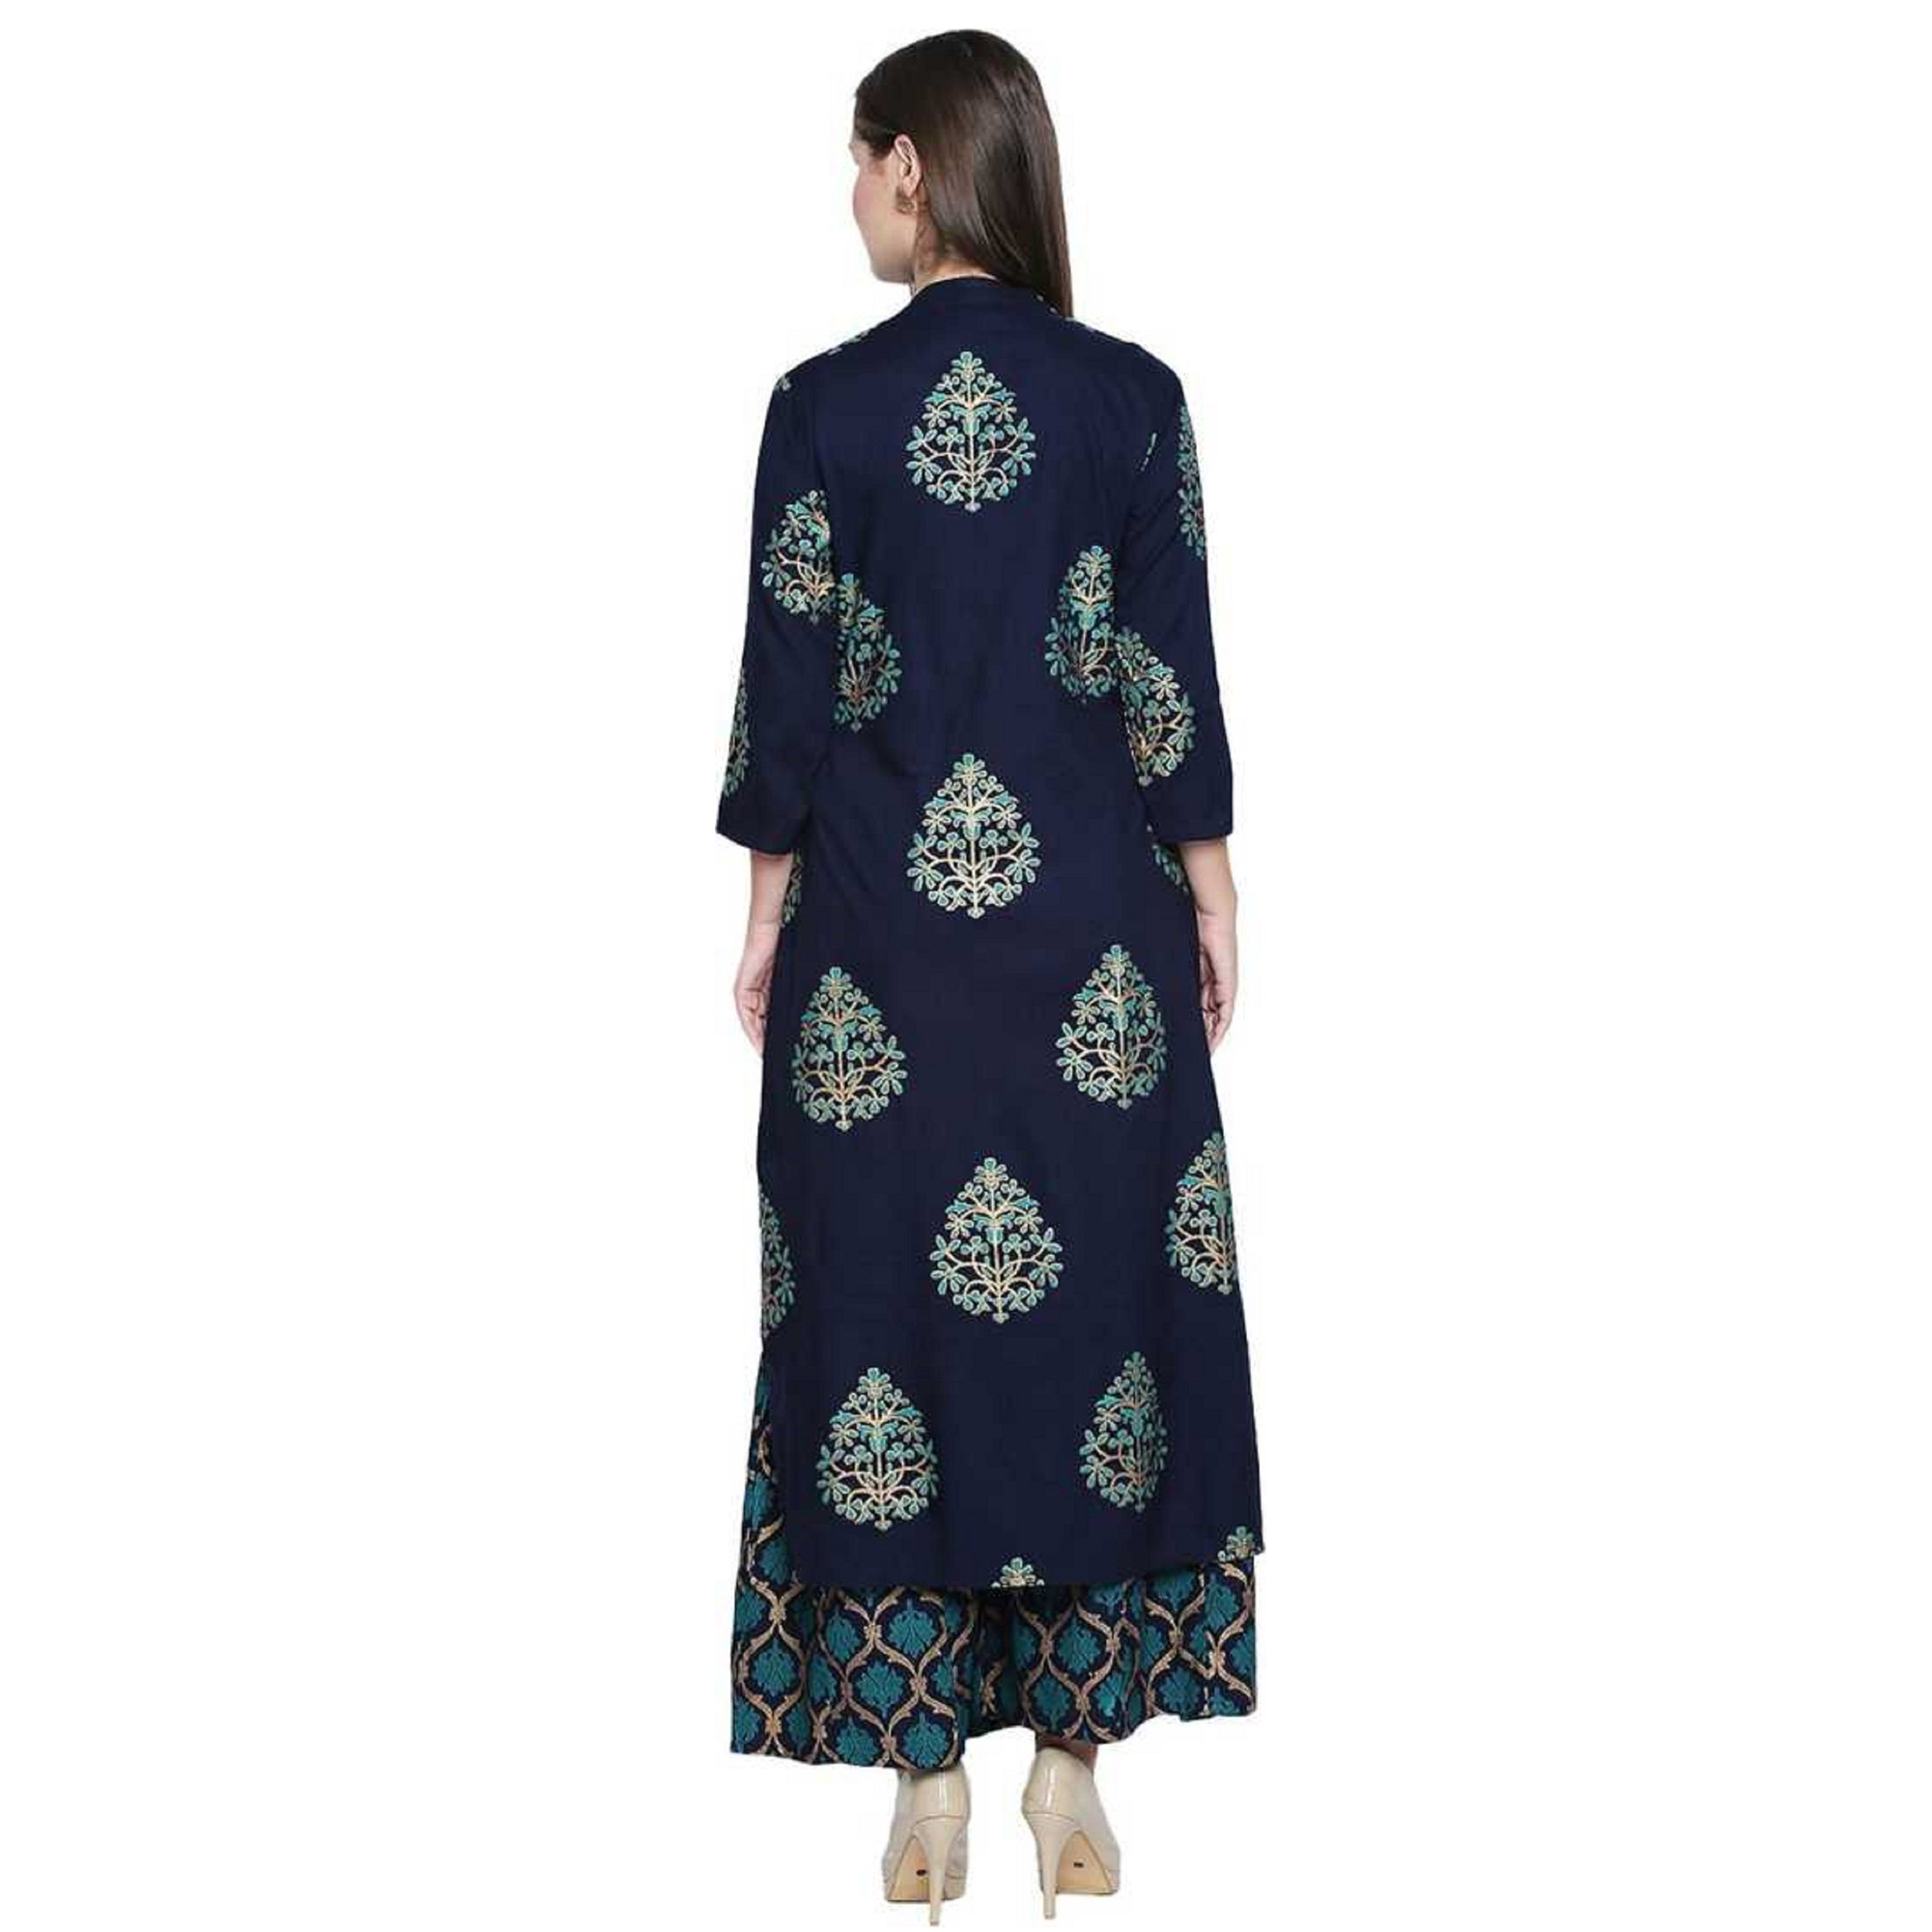 Fantastic Navy Blue Colored Party Wear Foil Printed Cotton Kurti-Palazzo Set